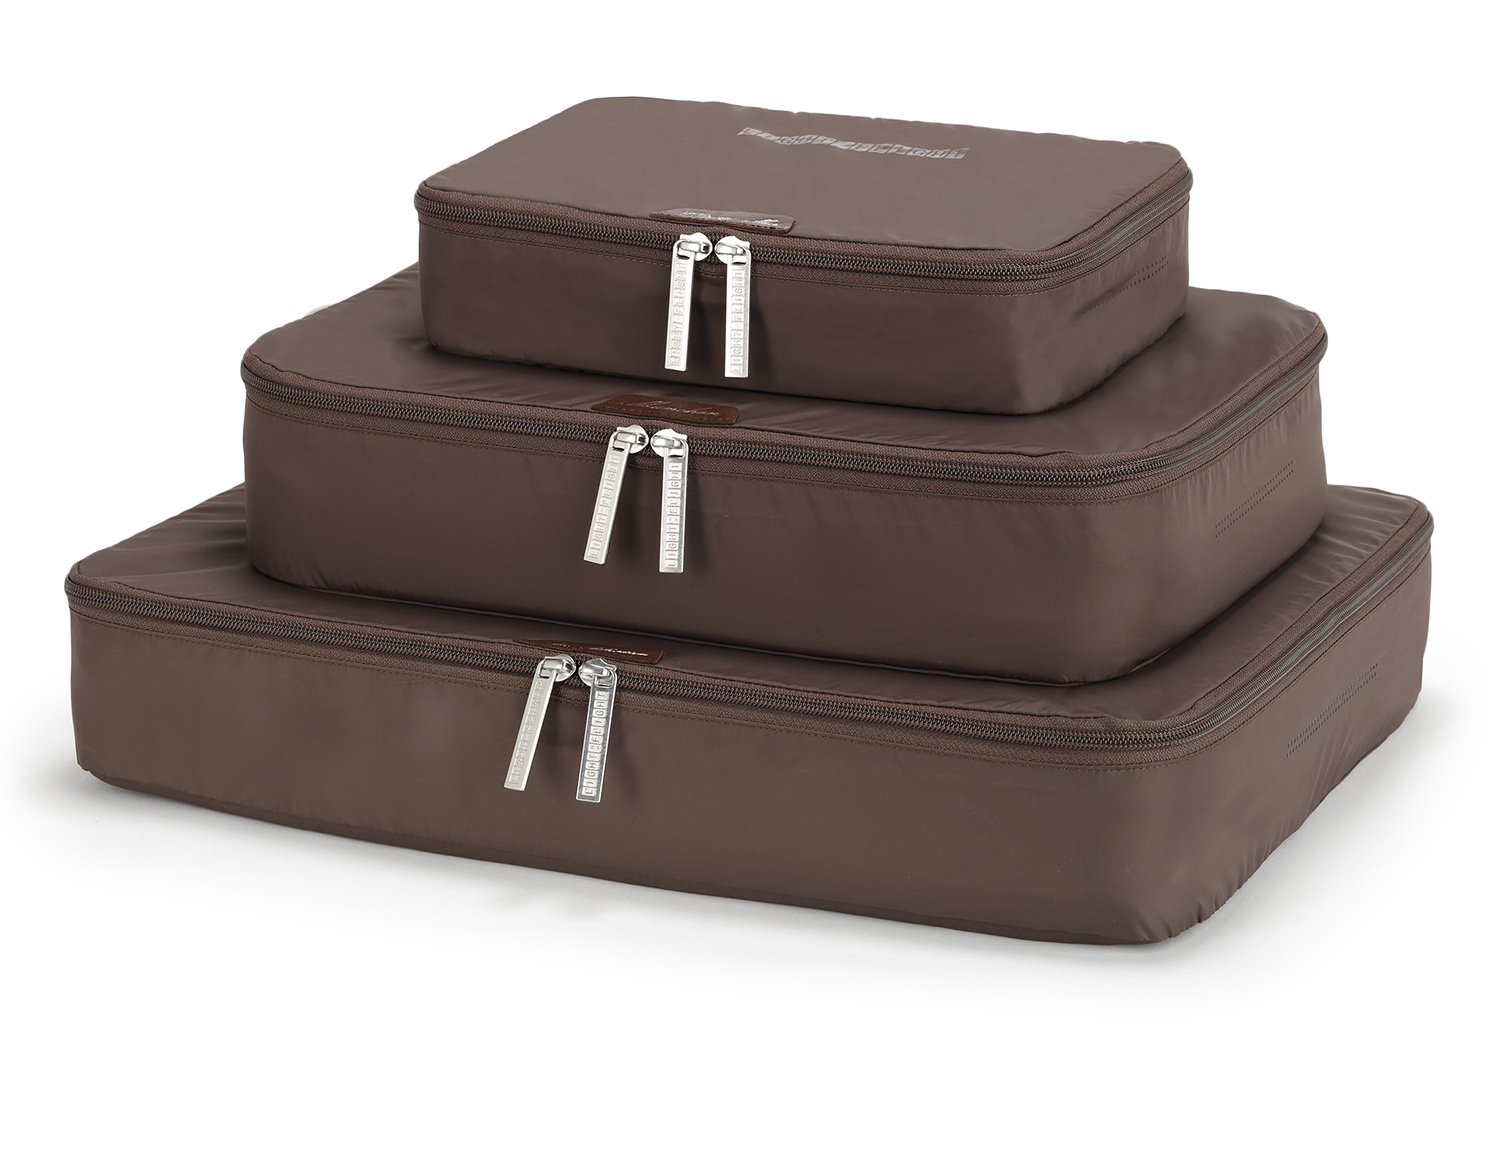 LIGHT FLIGHT 3 Set Travel Packing Cubes (Small-Large) for Carry-on Travel Accessories, Suitcase and Backpacking, Brown